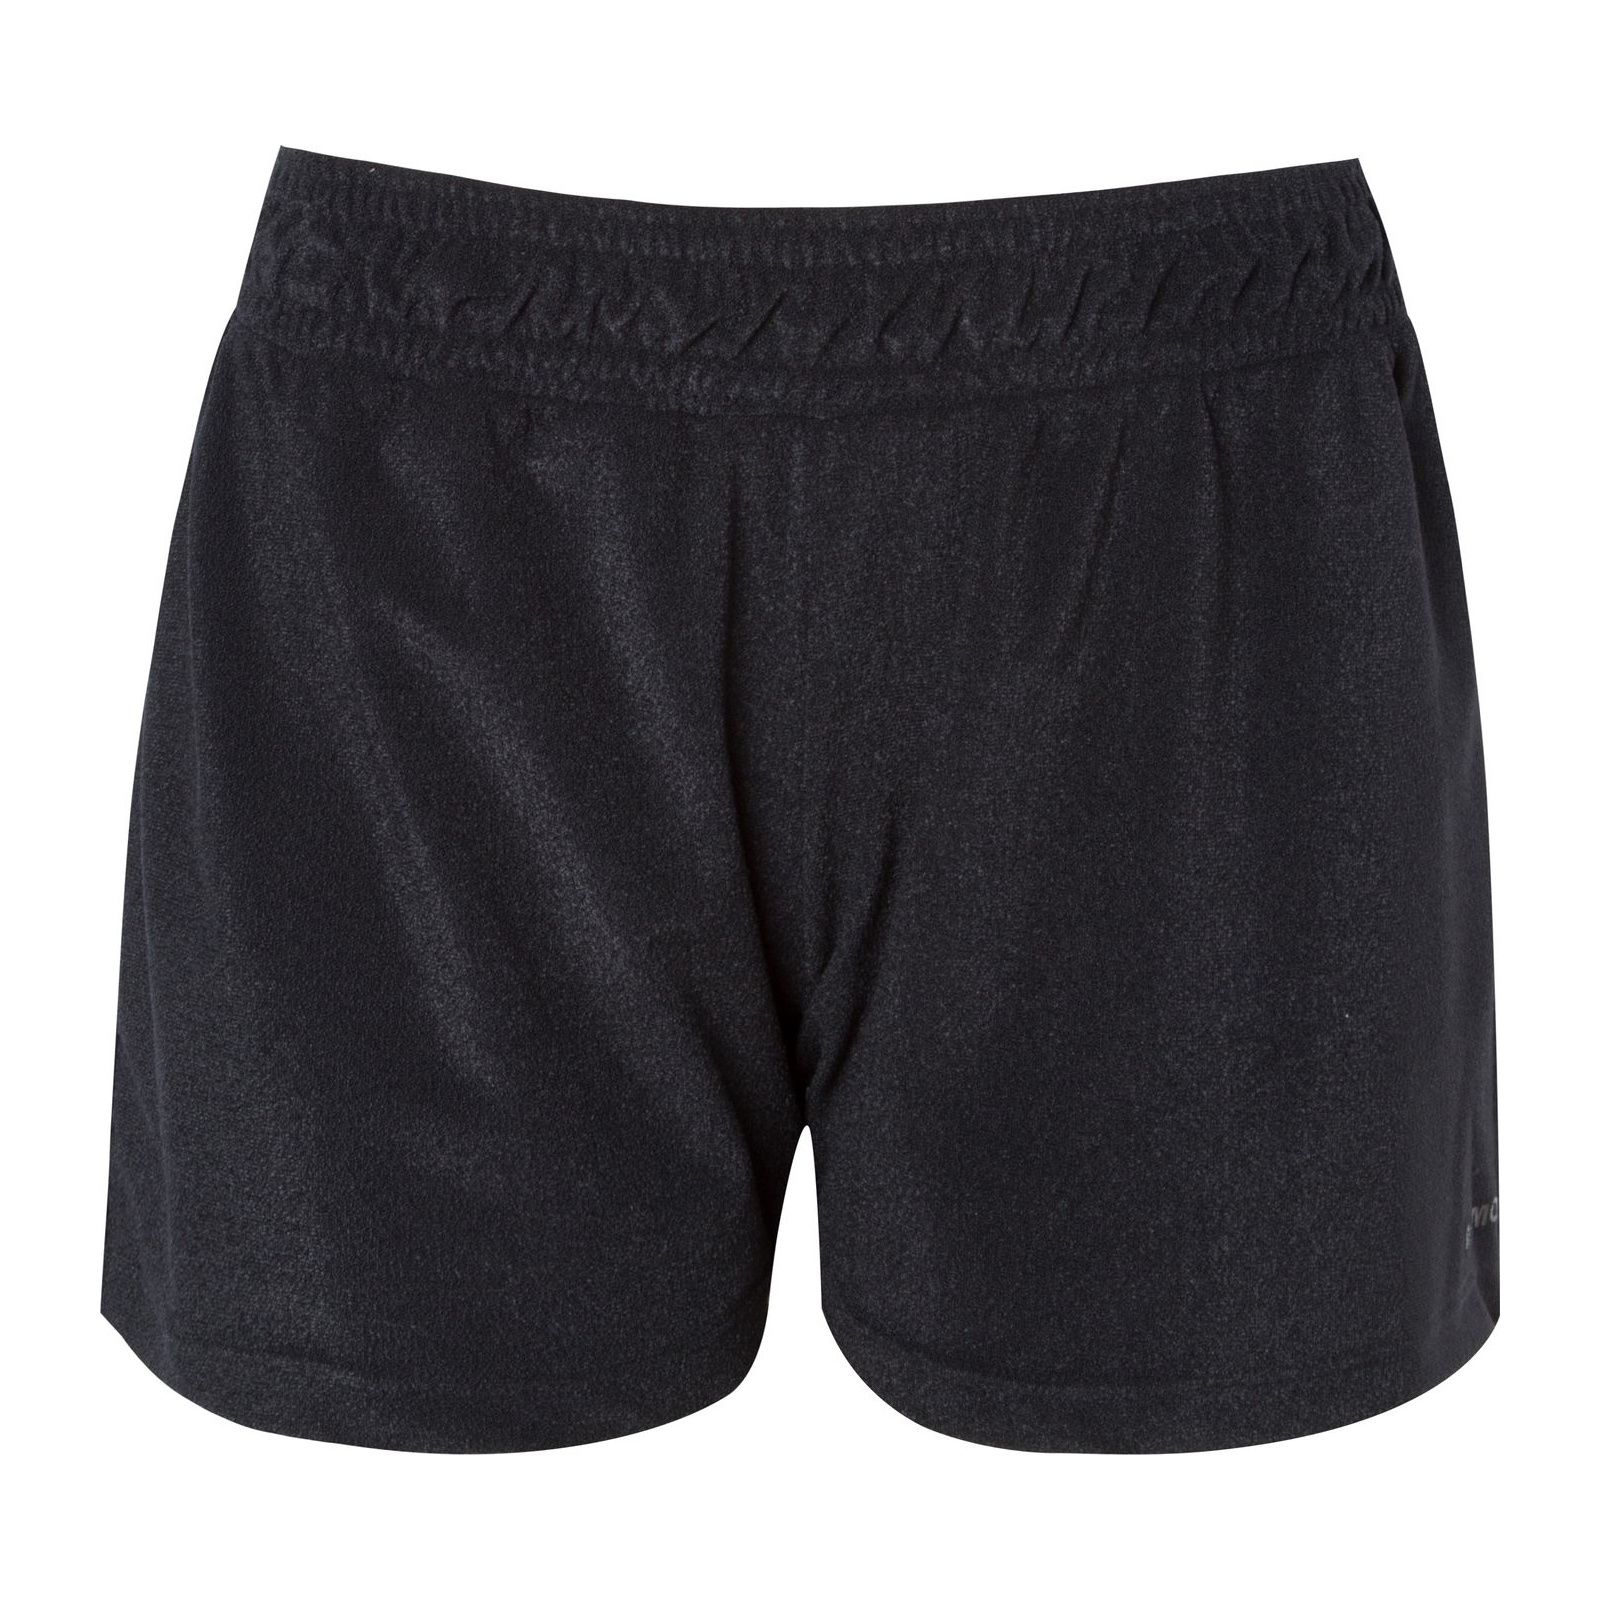 Short Neo Plush - Preto